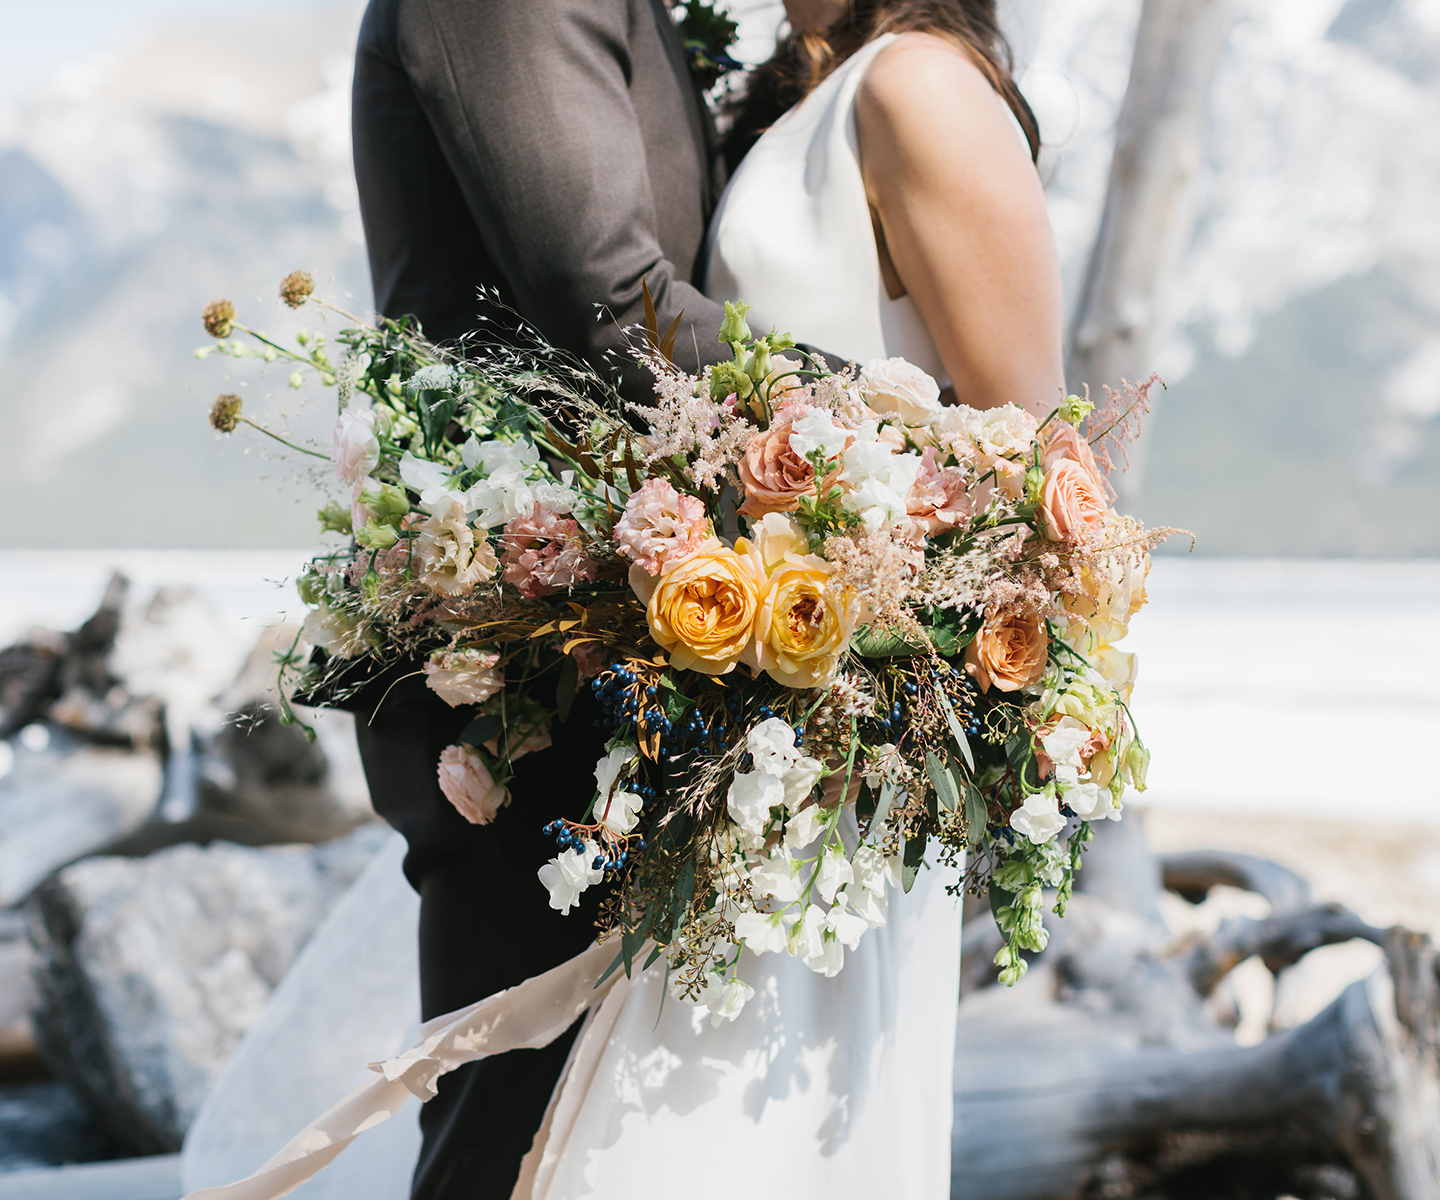 Bridal Bouquet Inspiration for Spring: 12 of the Prettiest Bouquets We've Seen This Spring in Alberta and the Rockies - Always Sunny on The Bronte Bride